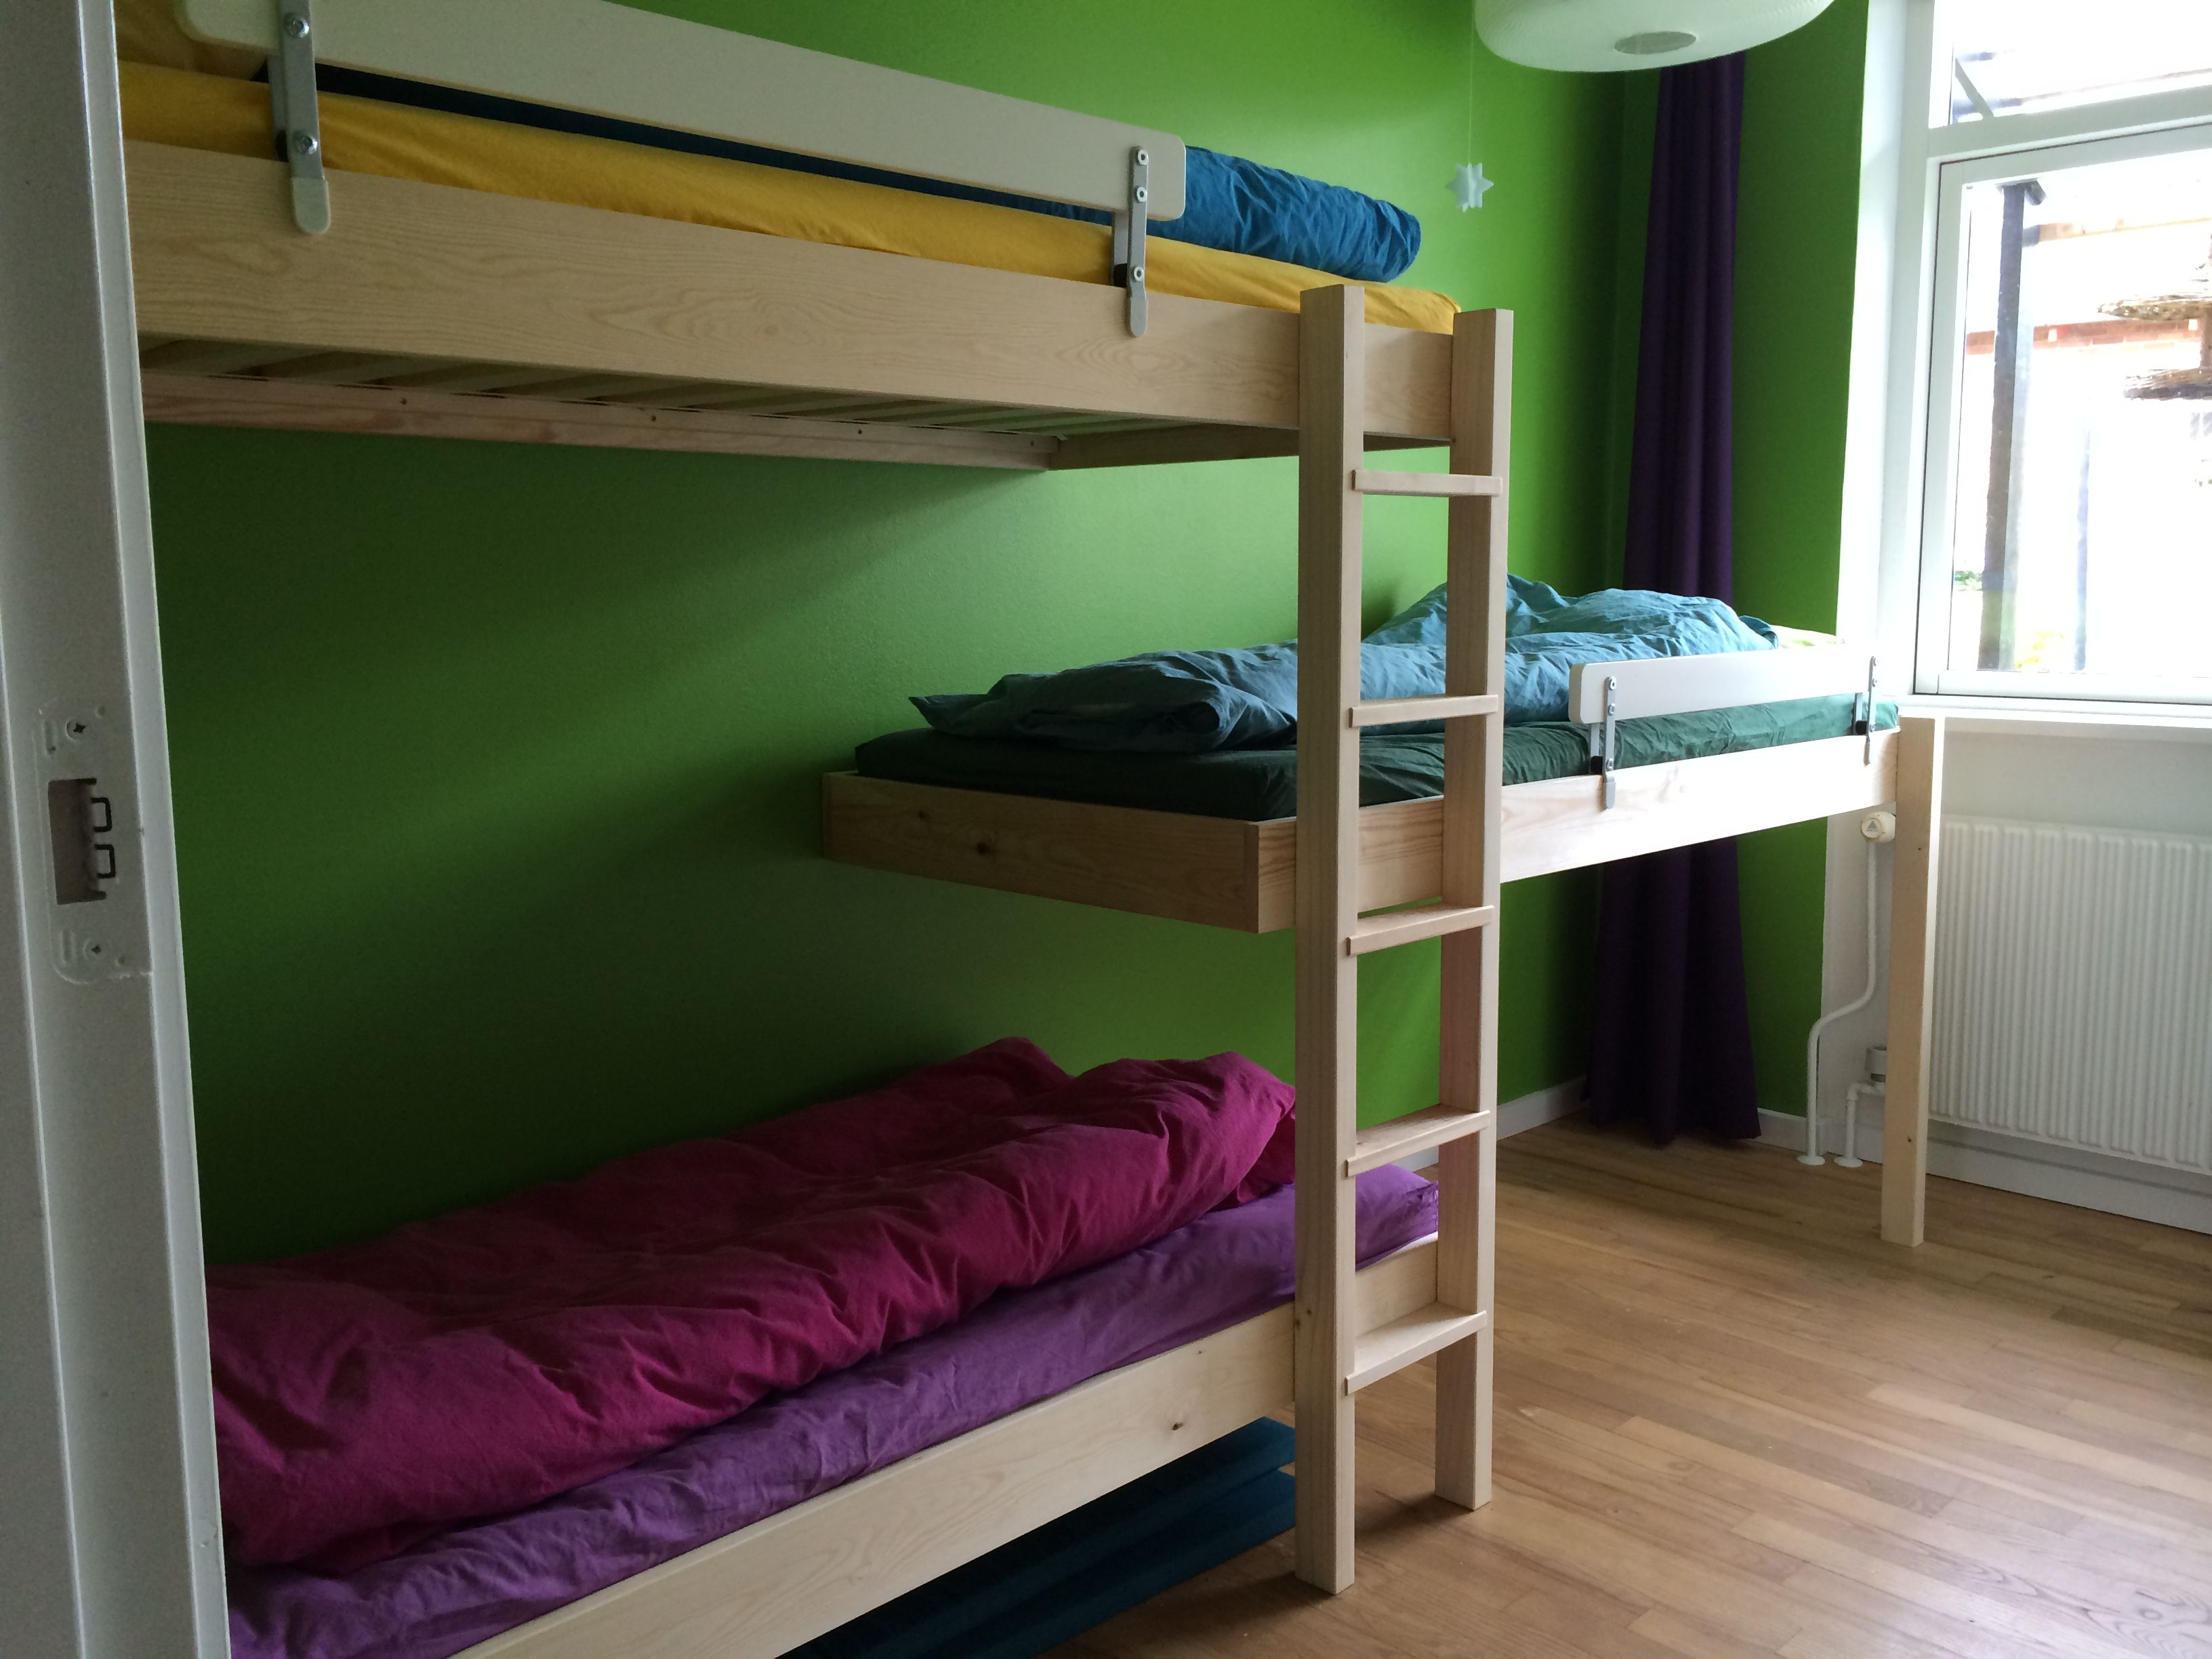 Triple bunk bed in room with low ceiling. Three frames and